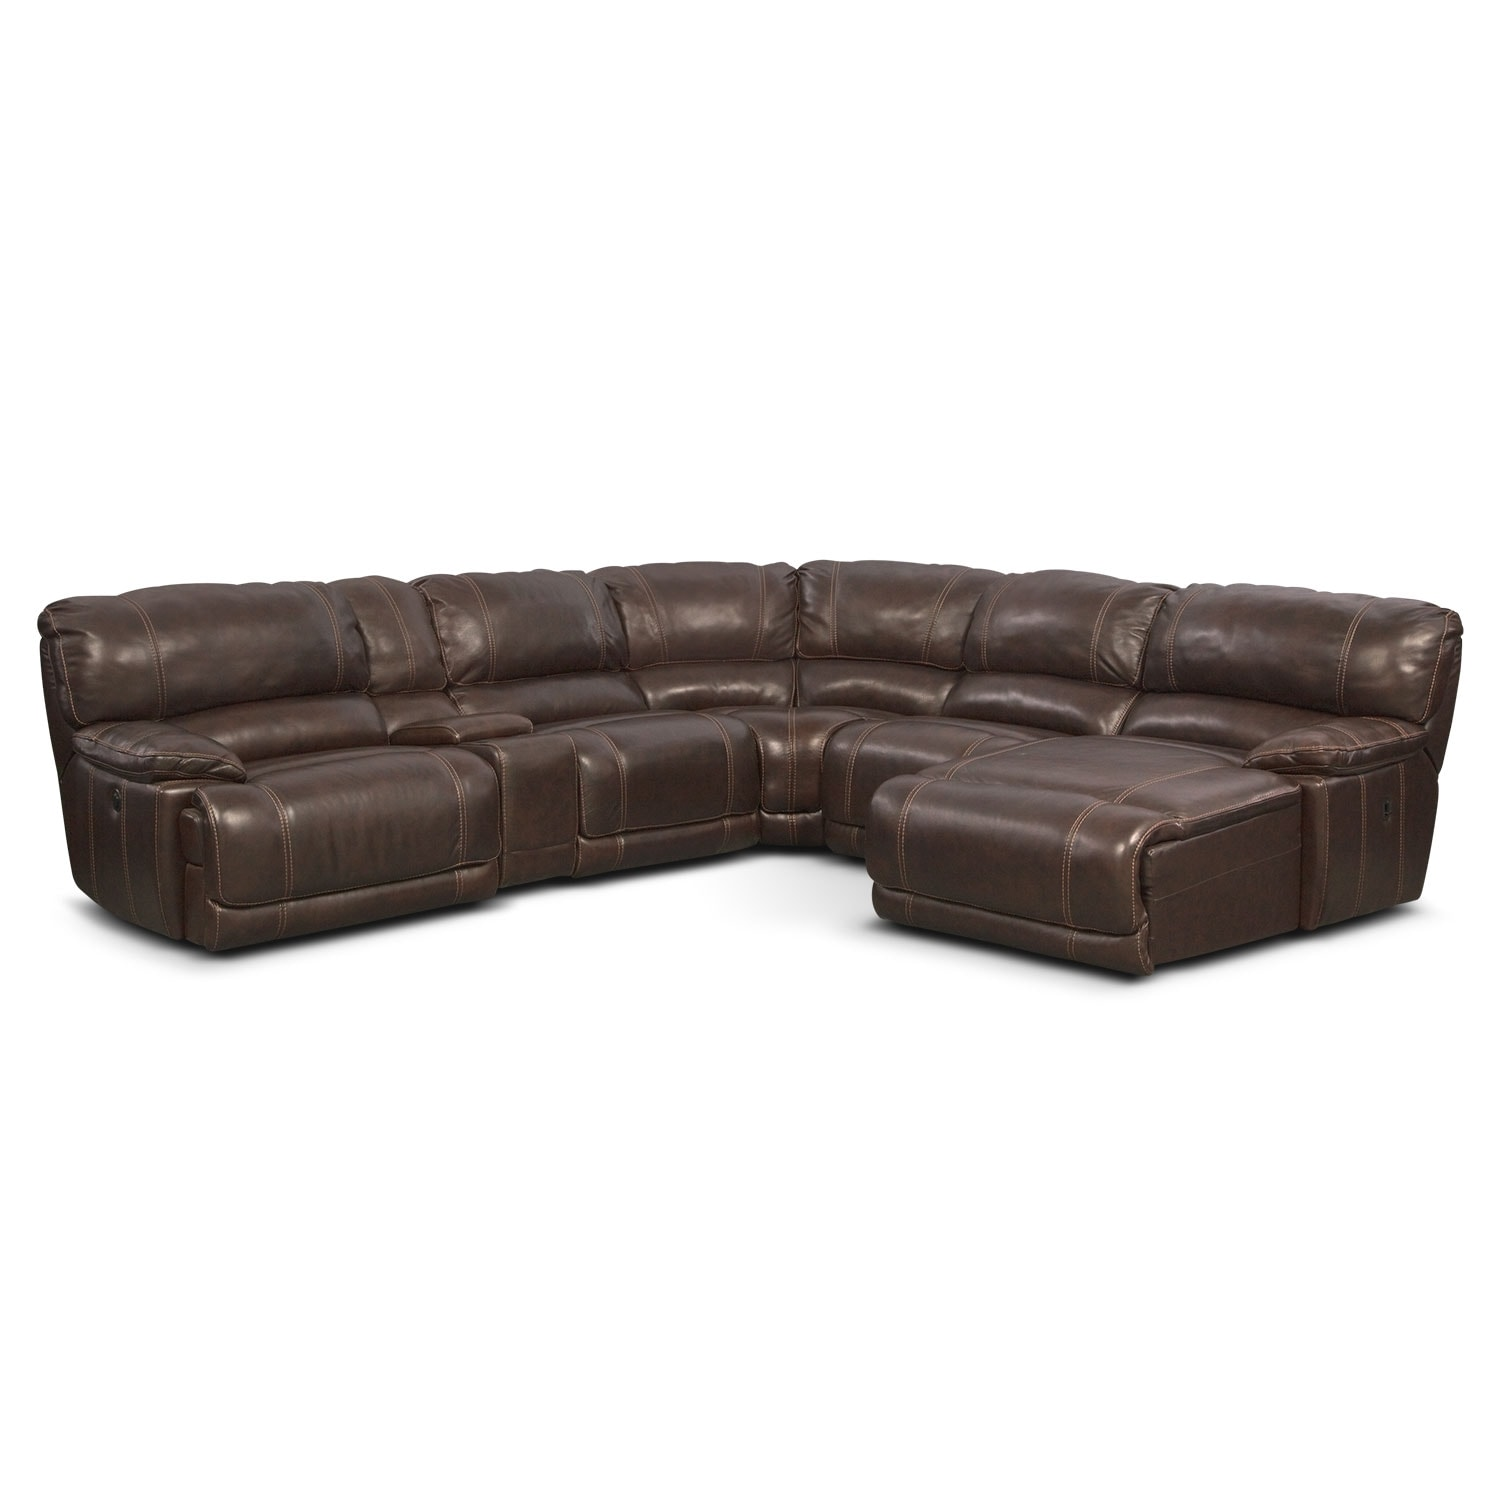 St. Malo 6-Piece Right-Facing Power Reclining Sectional - Brown